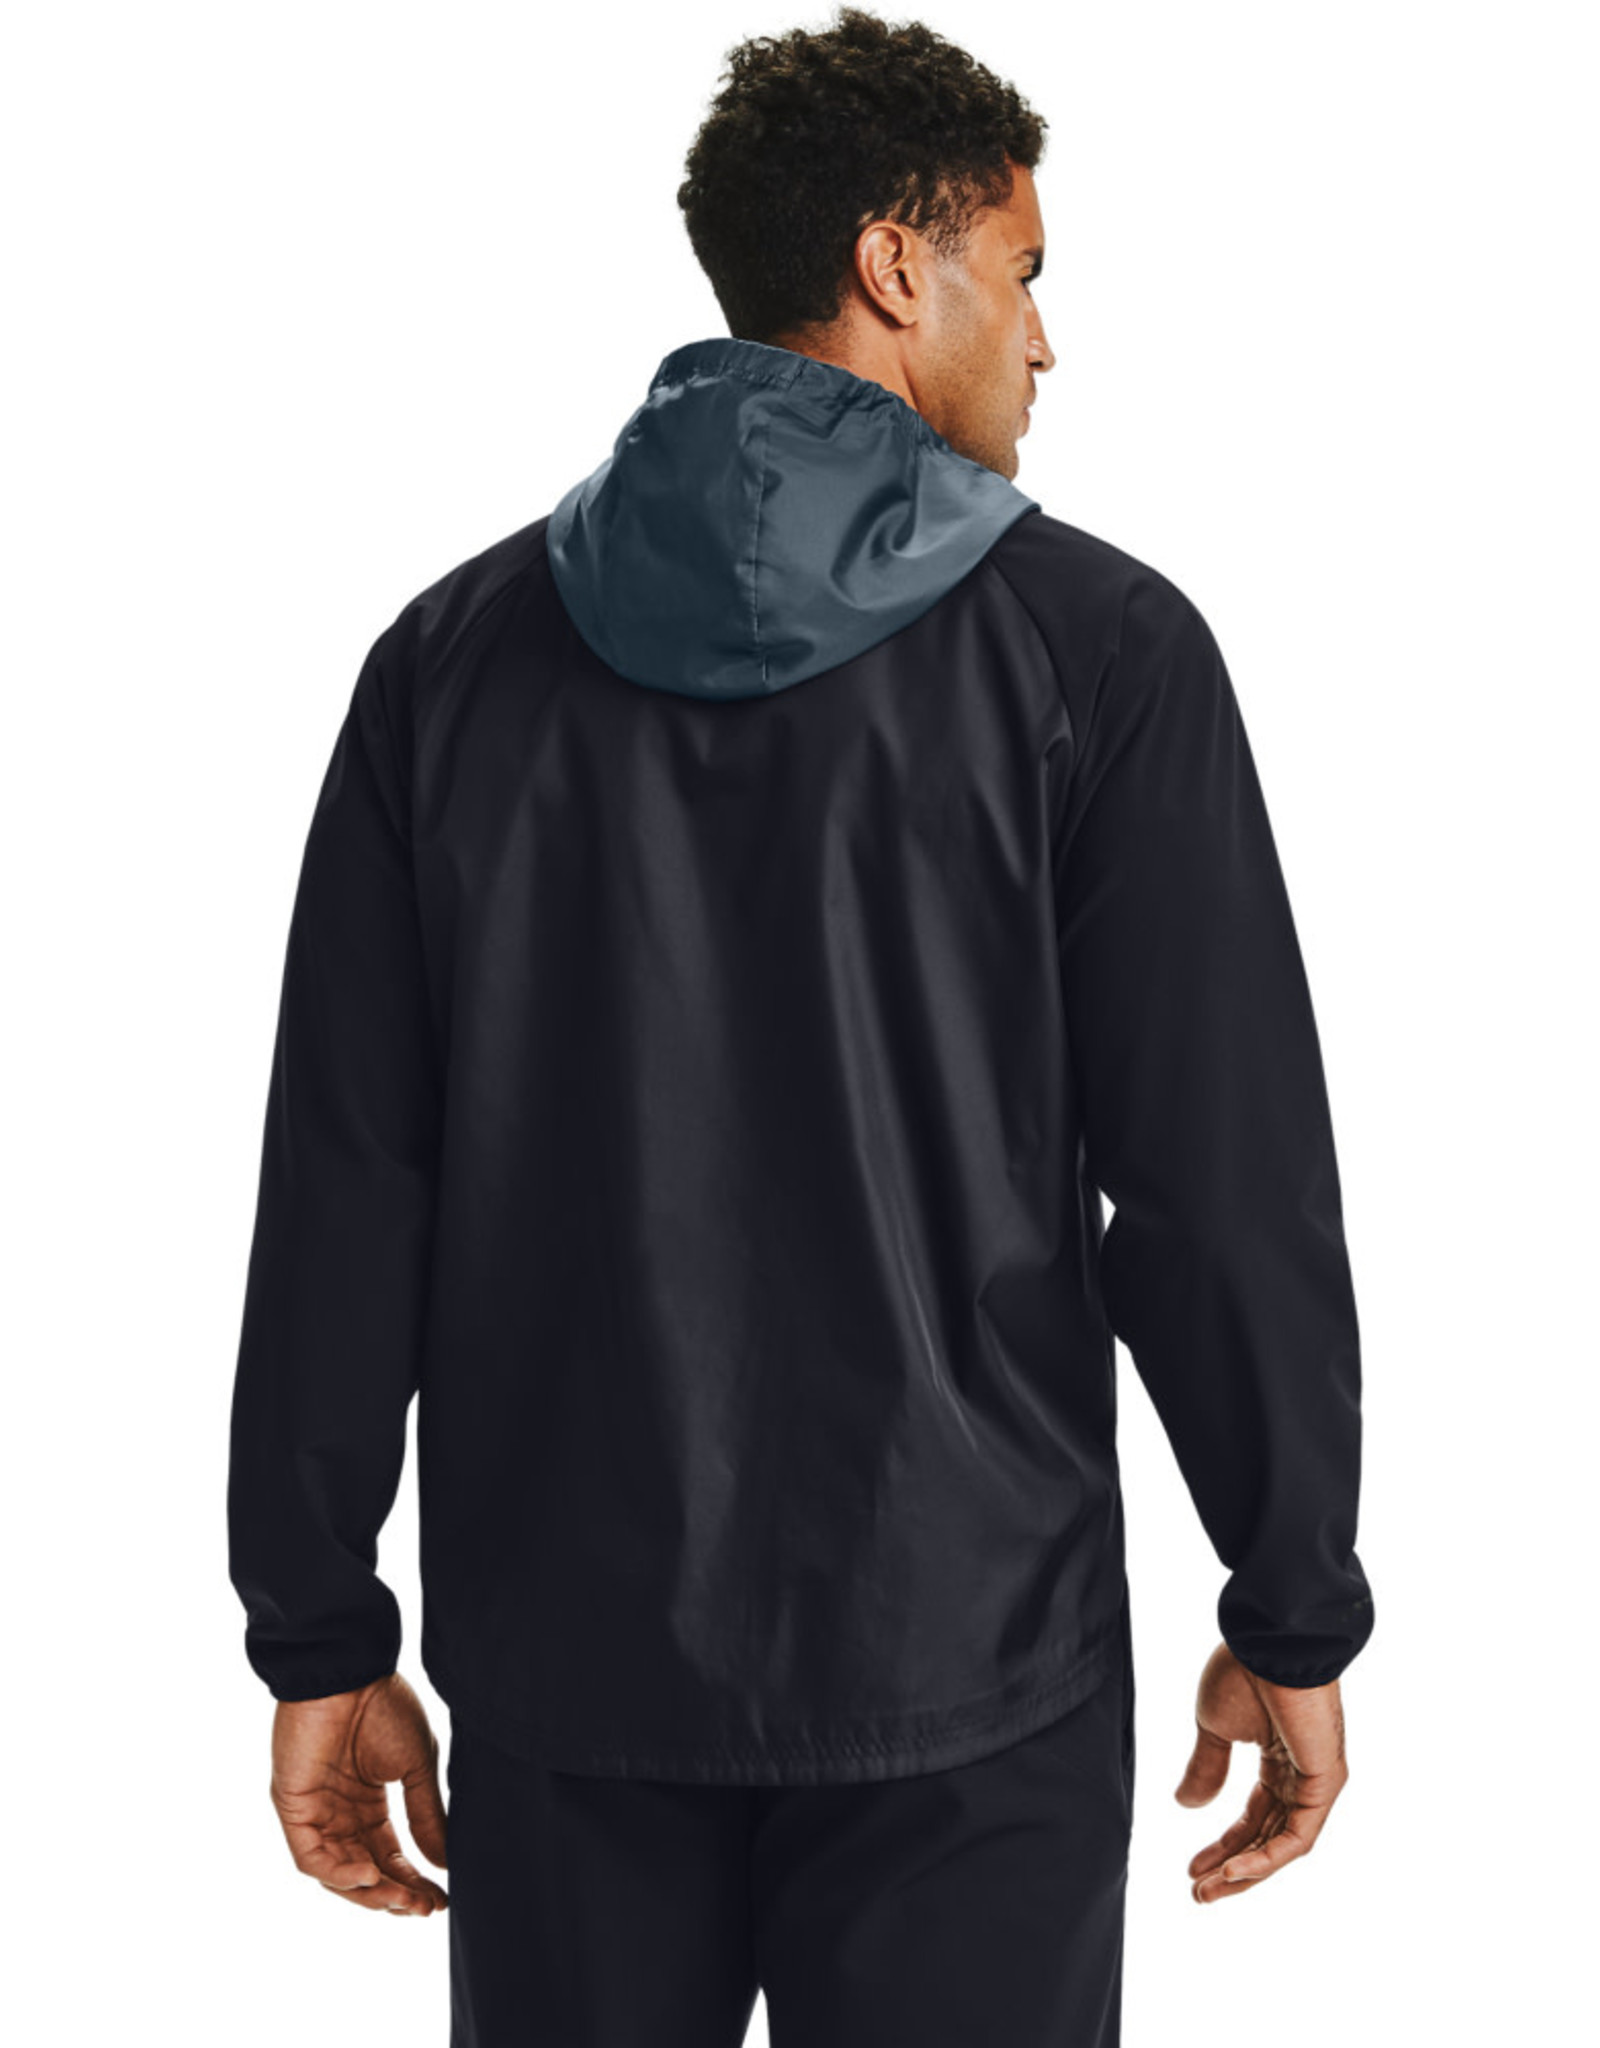 Under Armour Stretch-Woven Hooded Jacket - Black-blue